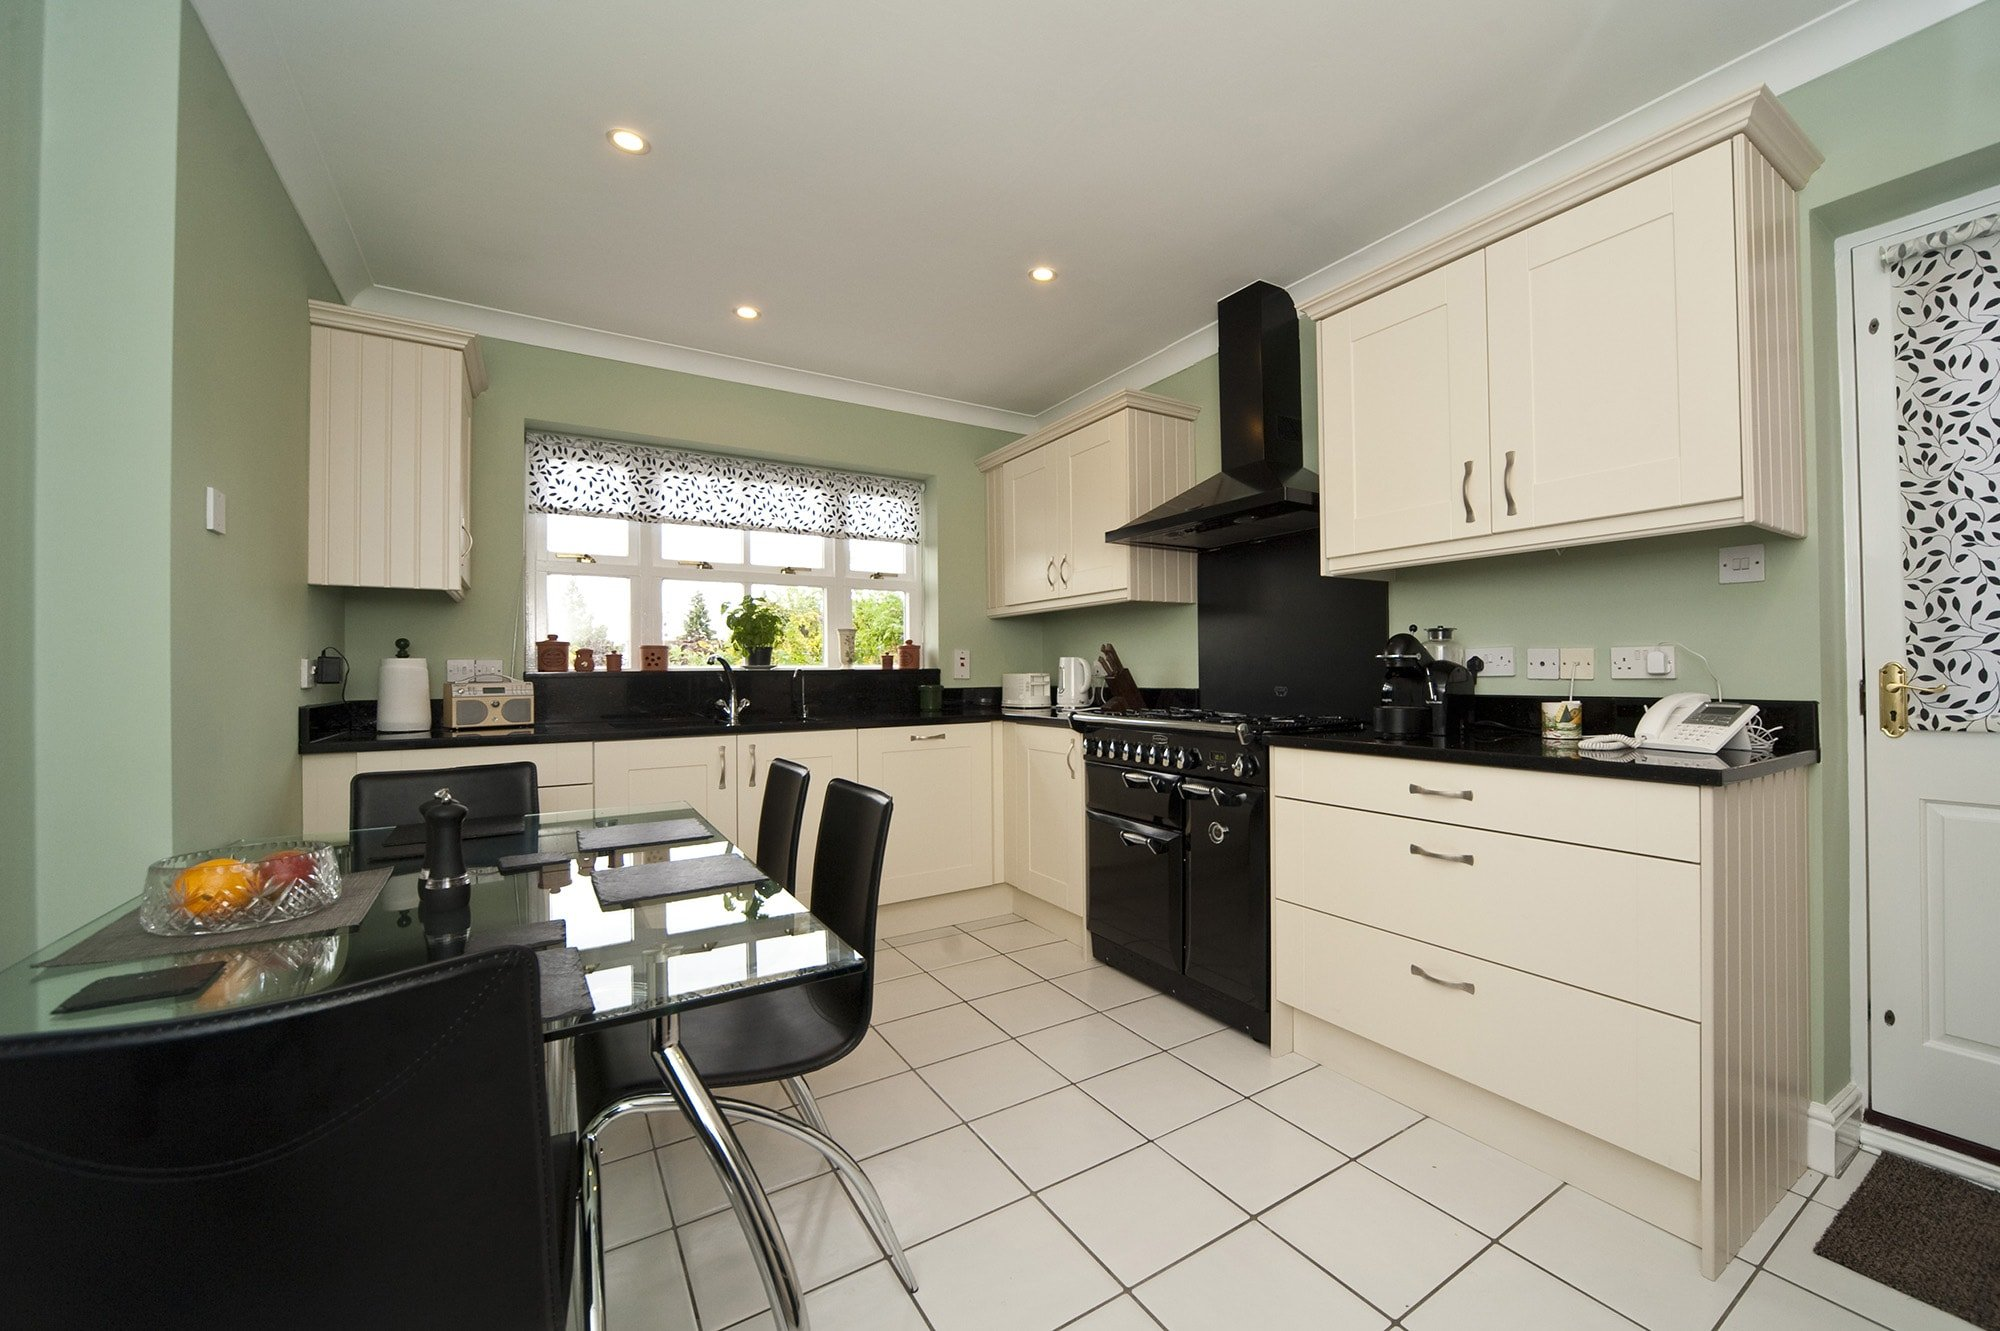 black-galaxy-granite-south-croydon-102842-a-kitchen-min